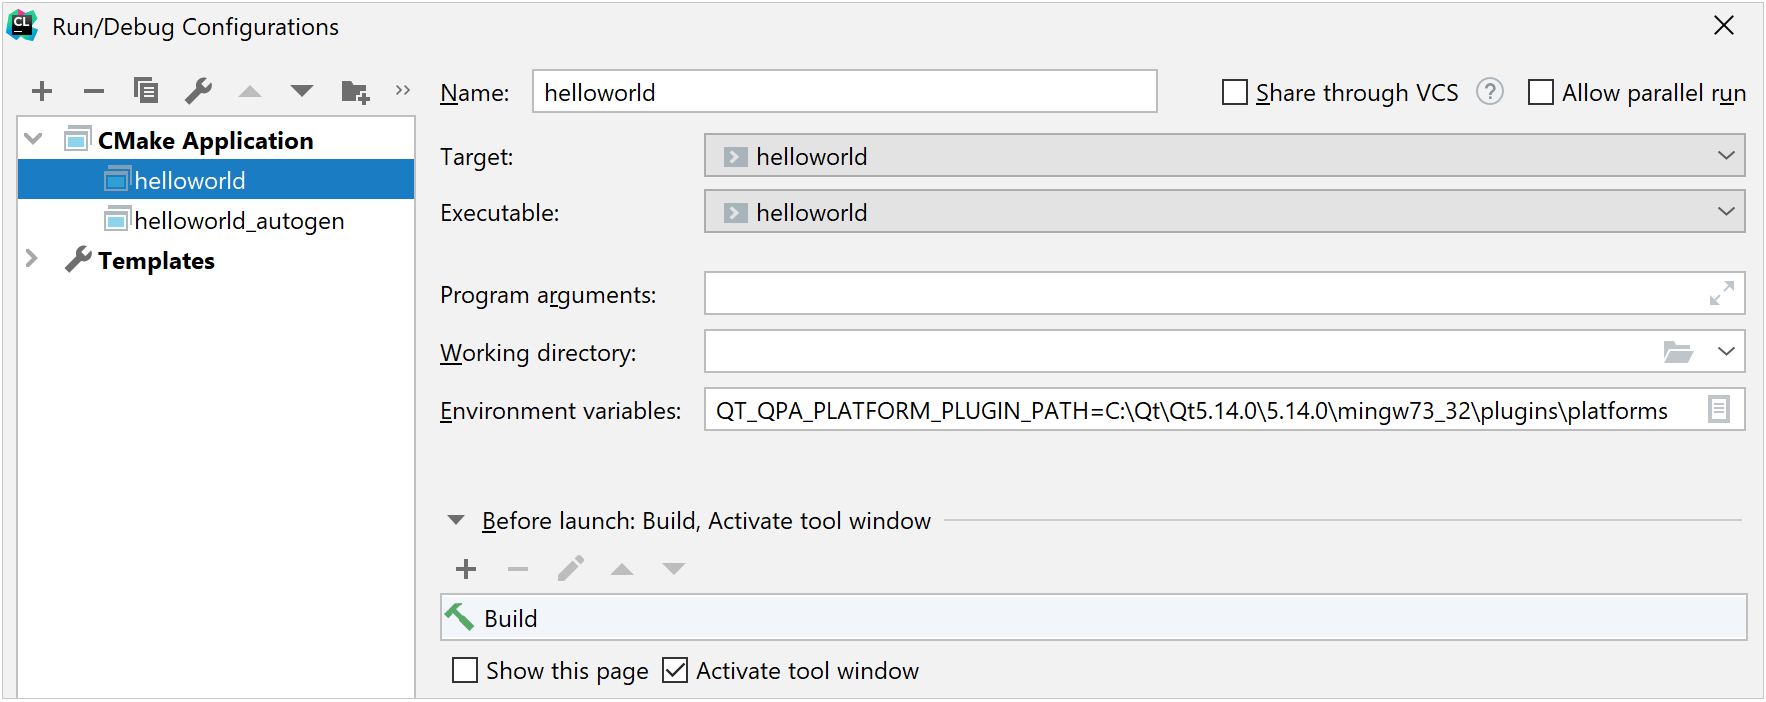 Environment variable for the Qt plugins path